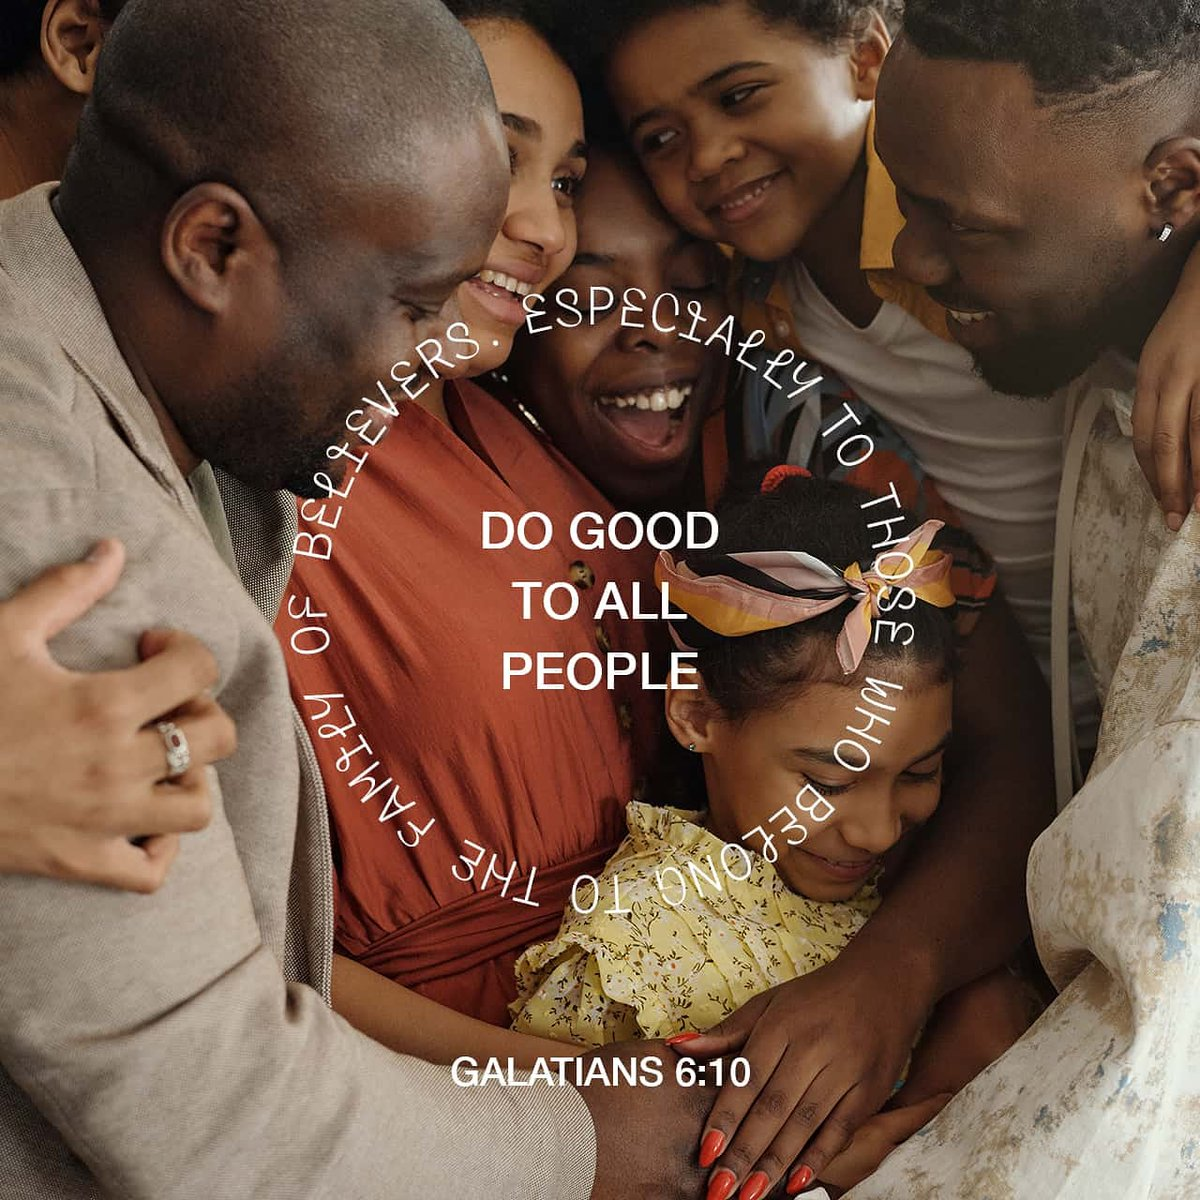 So then, while we have the opportunity, let us do good to all, but especially to those who belong to the family of the faith. #Galatians 6:10 #wordofgod #verseoftheday #Jesus  #StayHome #StaySafe  #WeShallOvercome #GodBlessUsAll